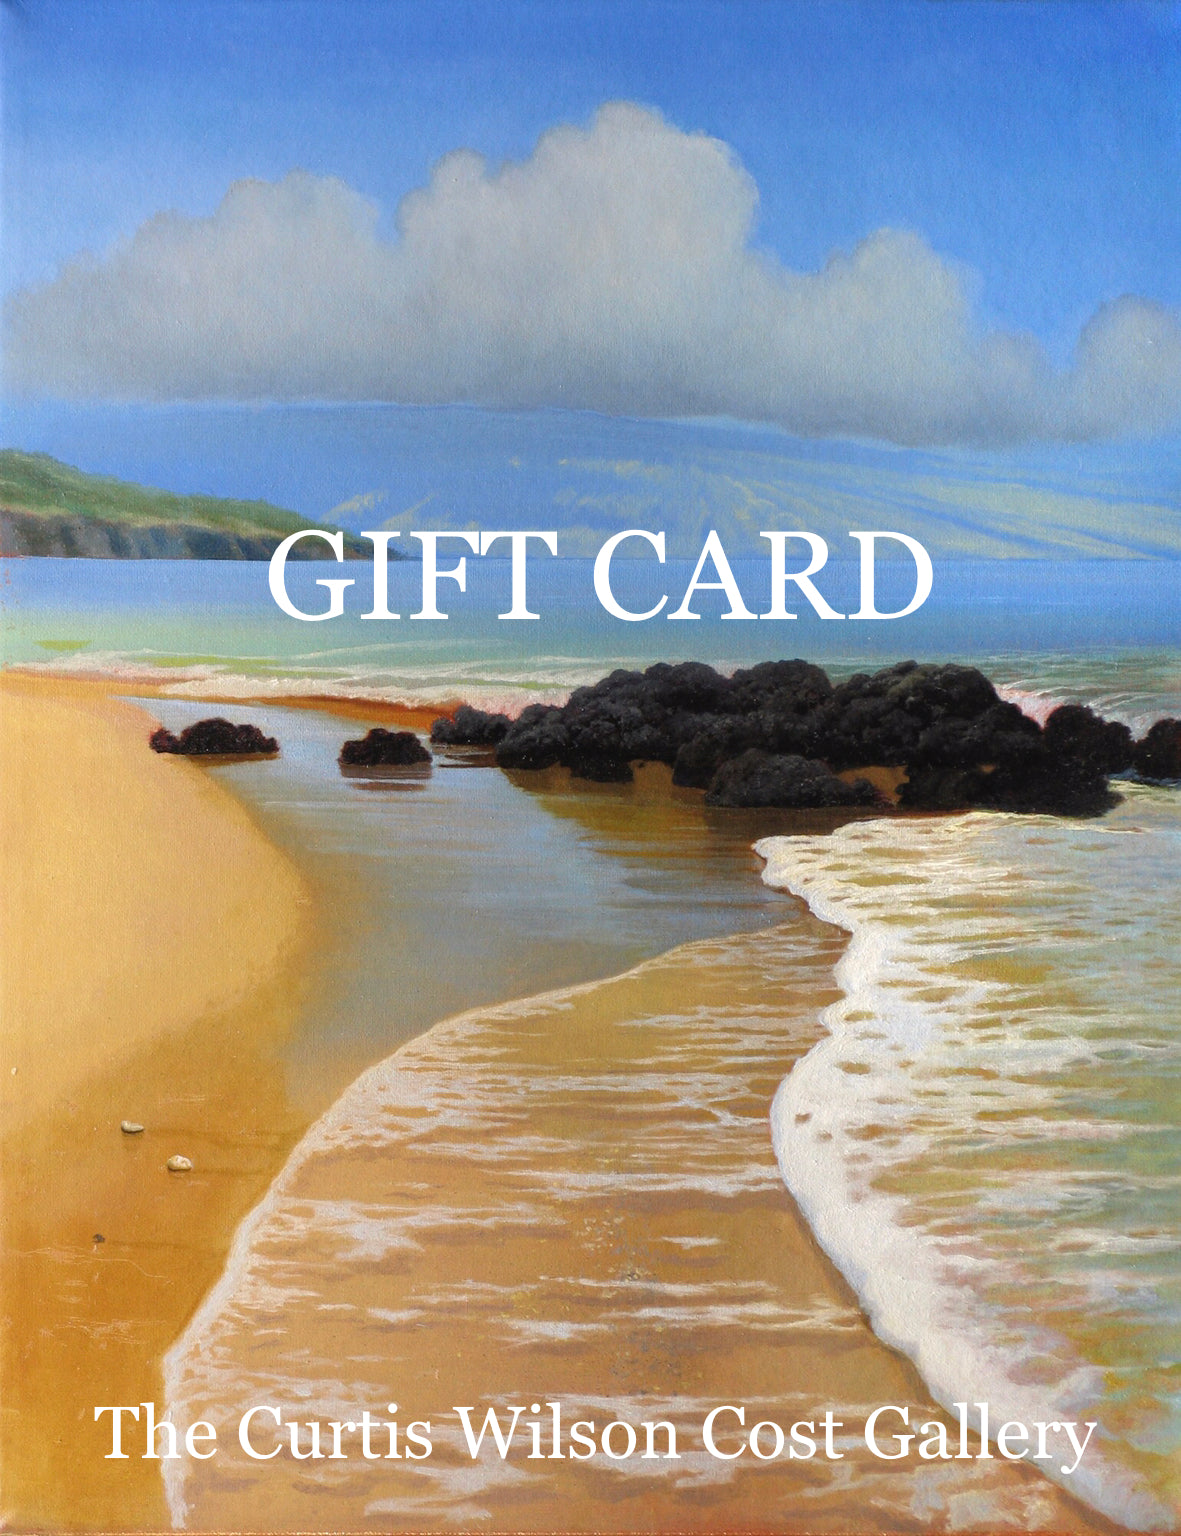 Curtis Wilson Cost Gallery gift card